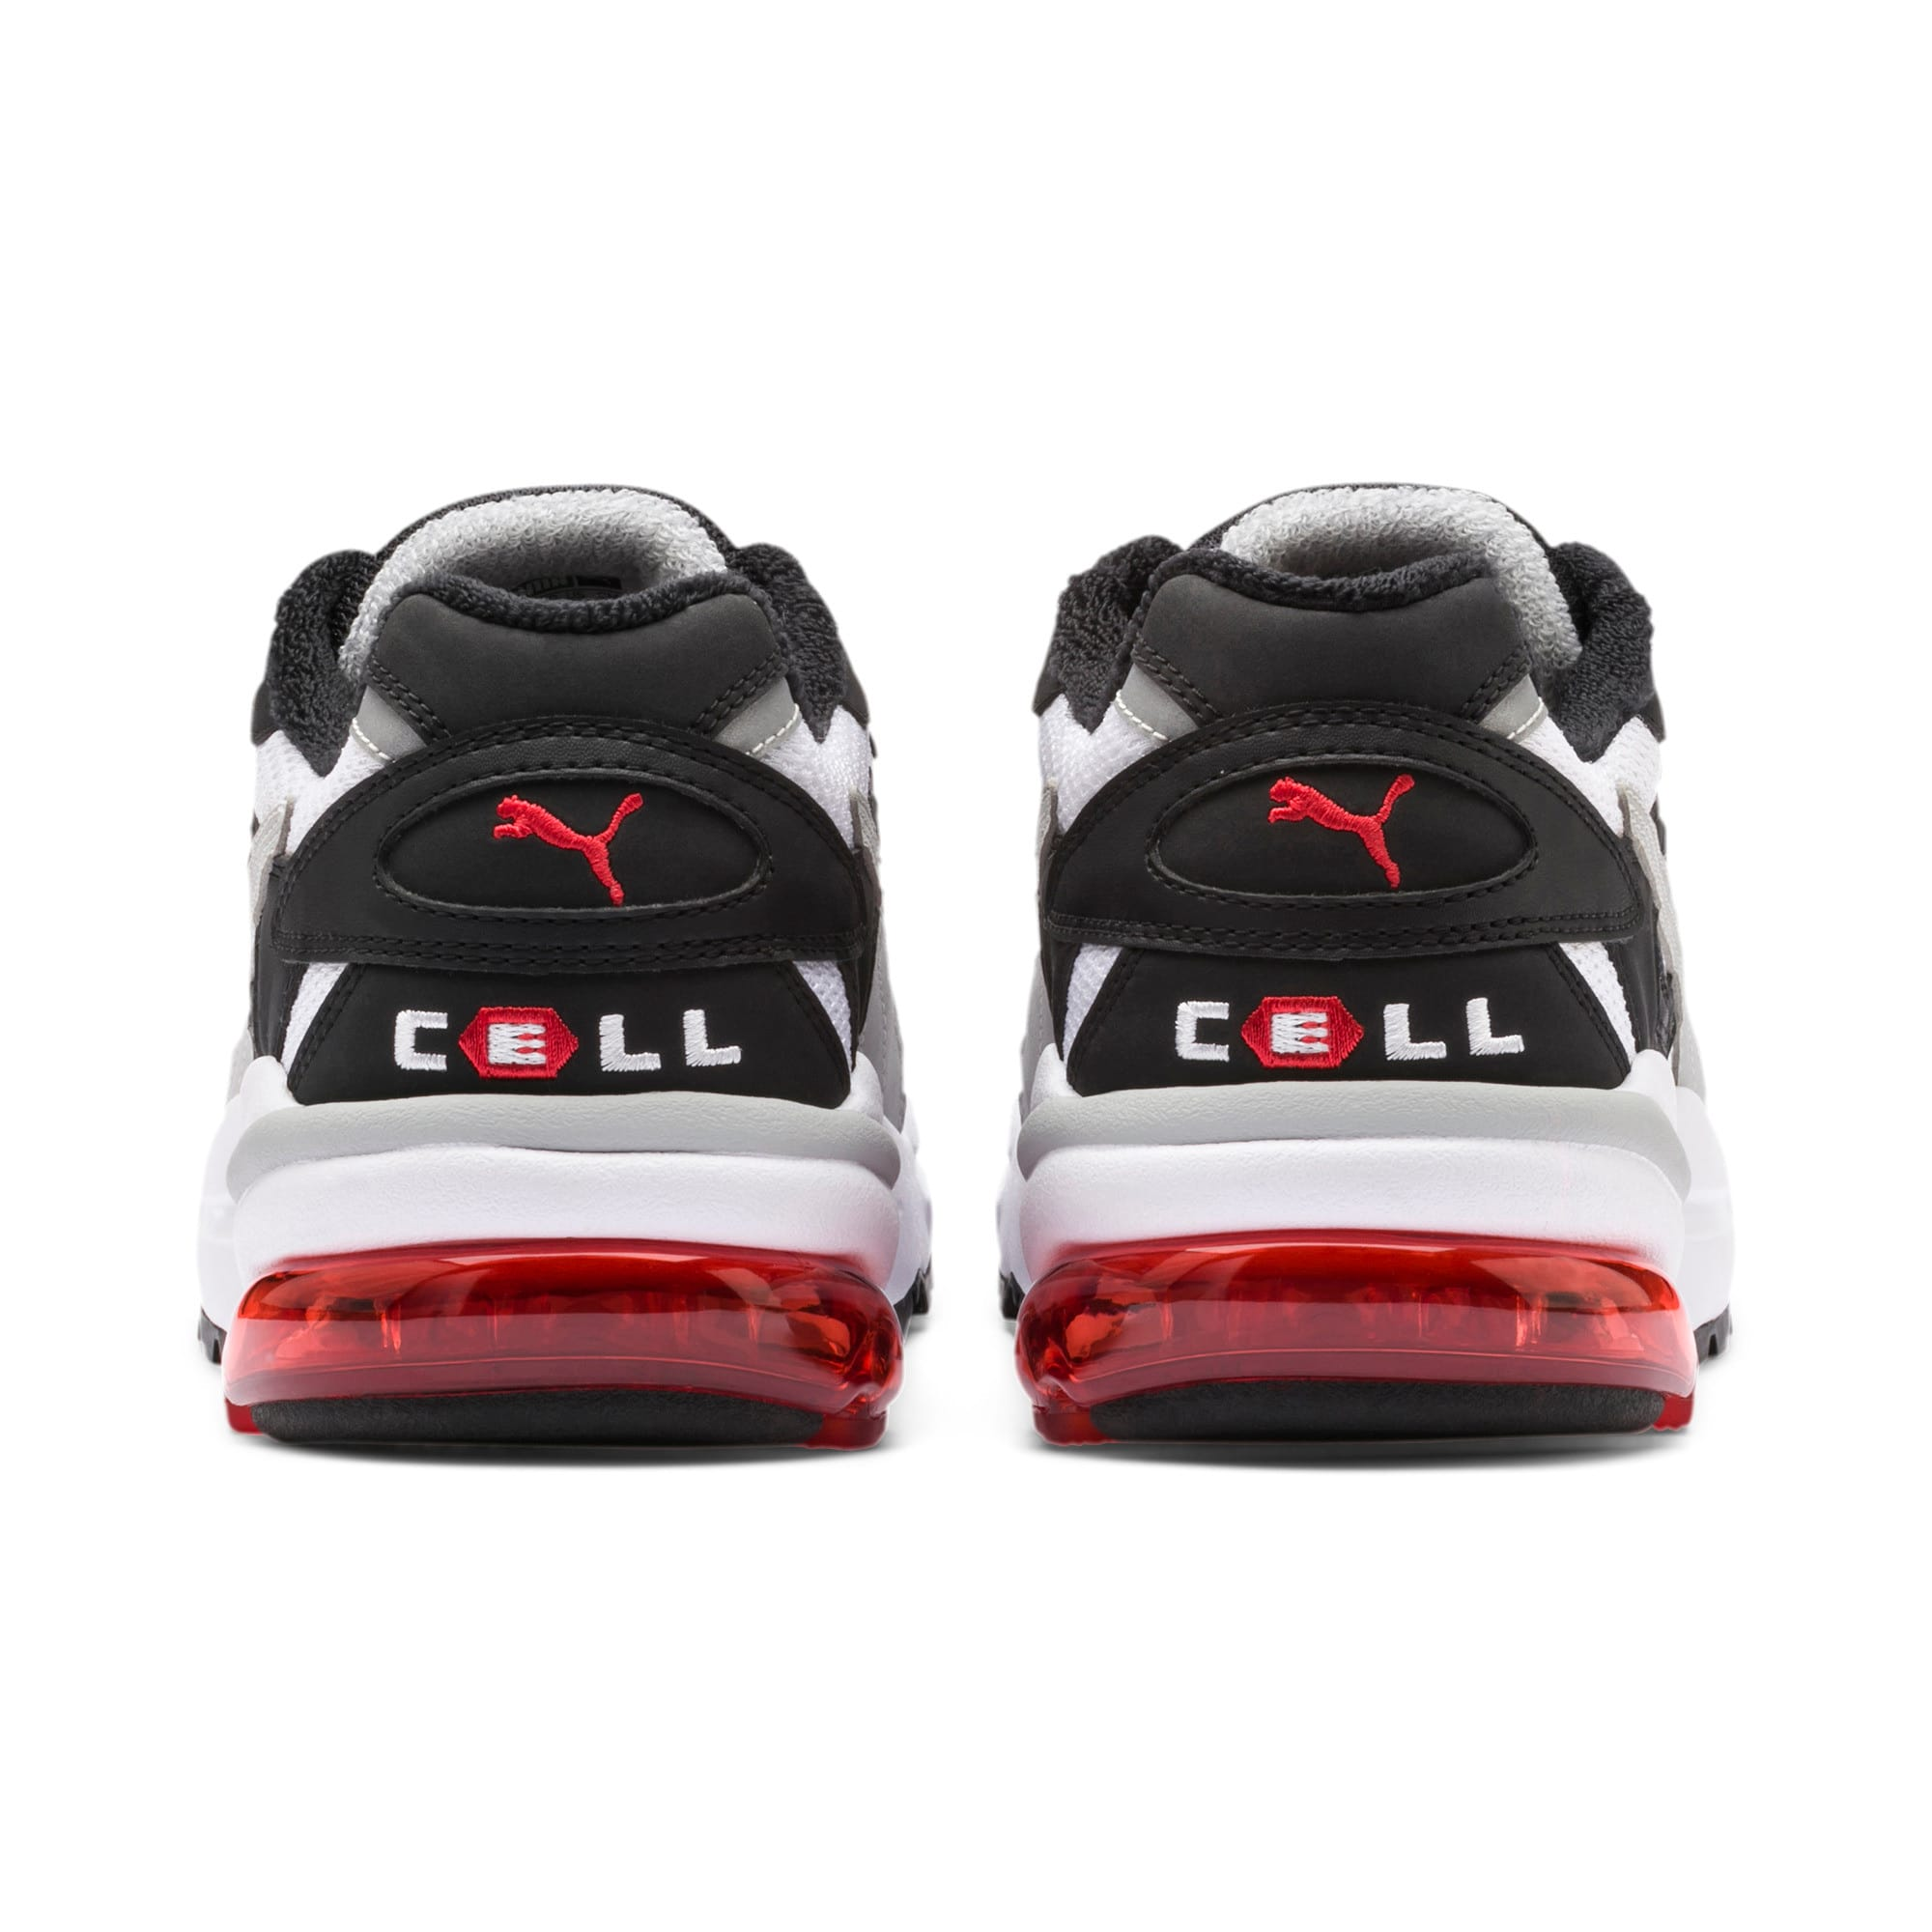 Thumbnail 4 of CELL Alien OG Sneakers, Puma Black-High Risk Red, medium